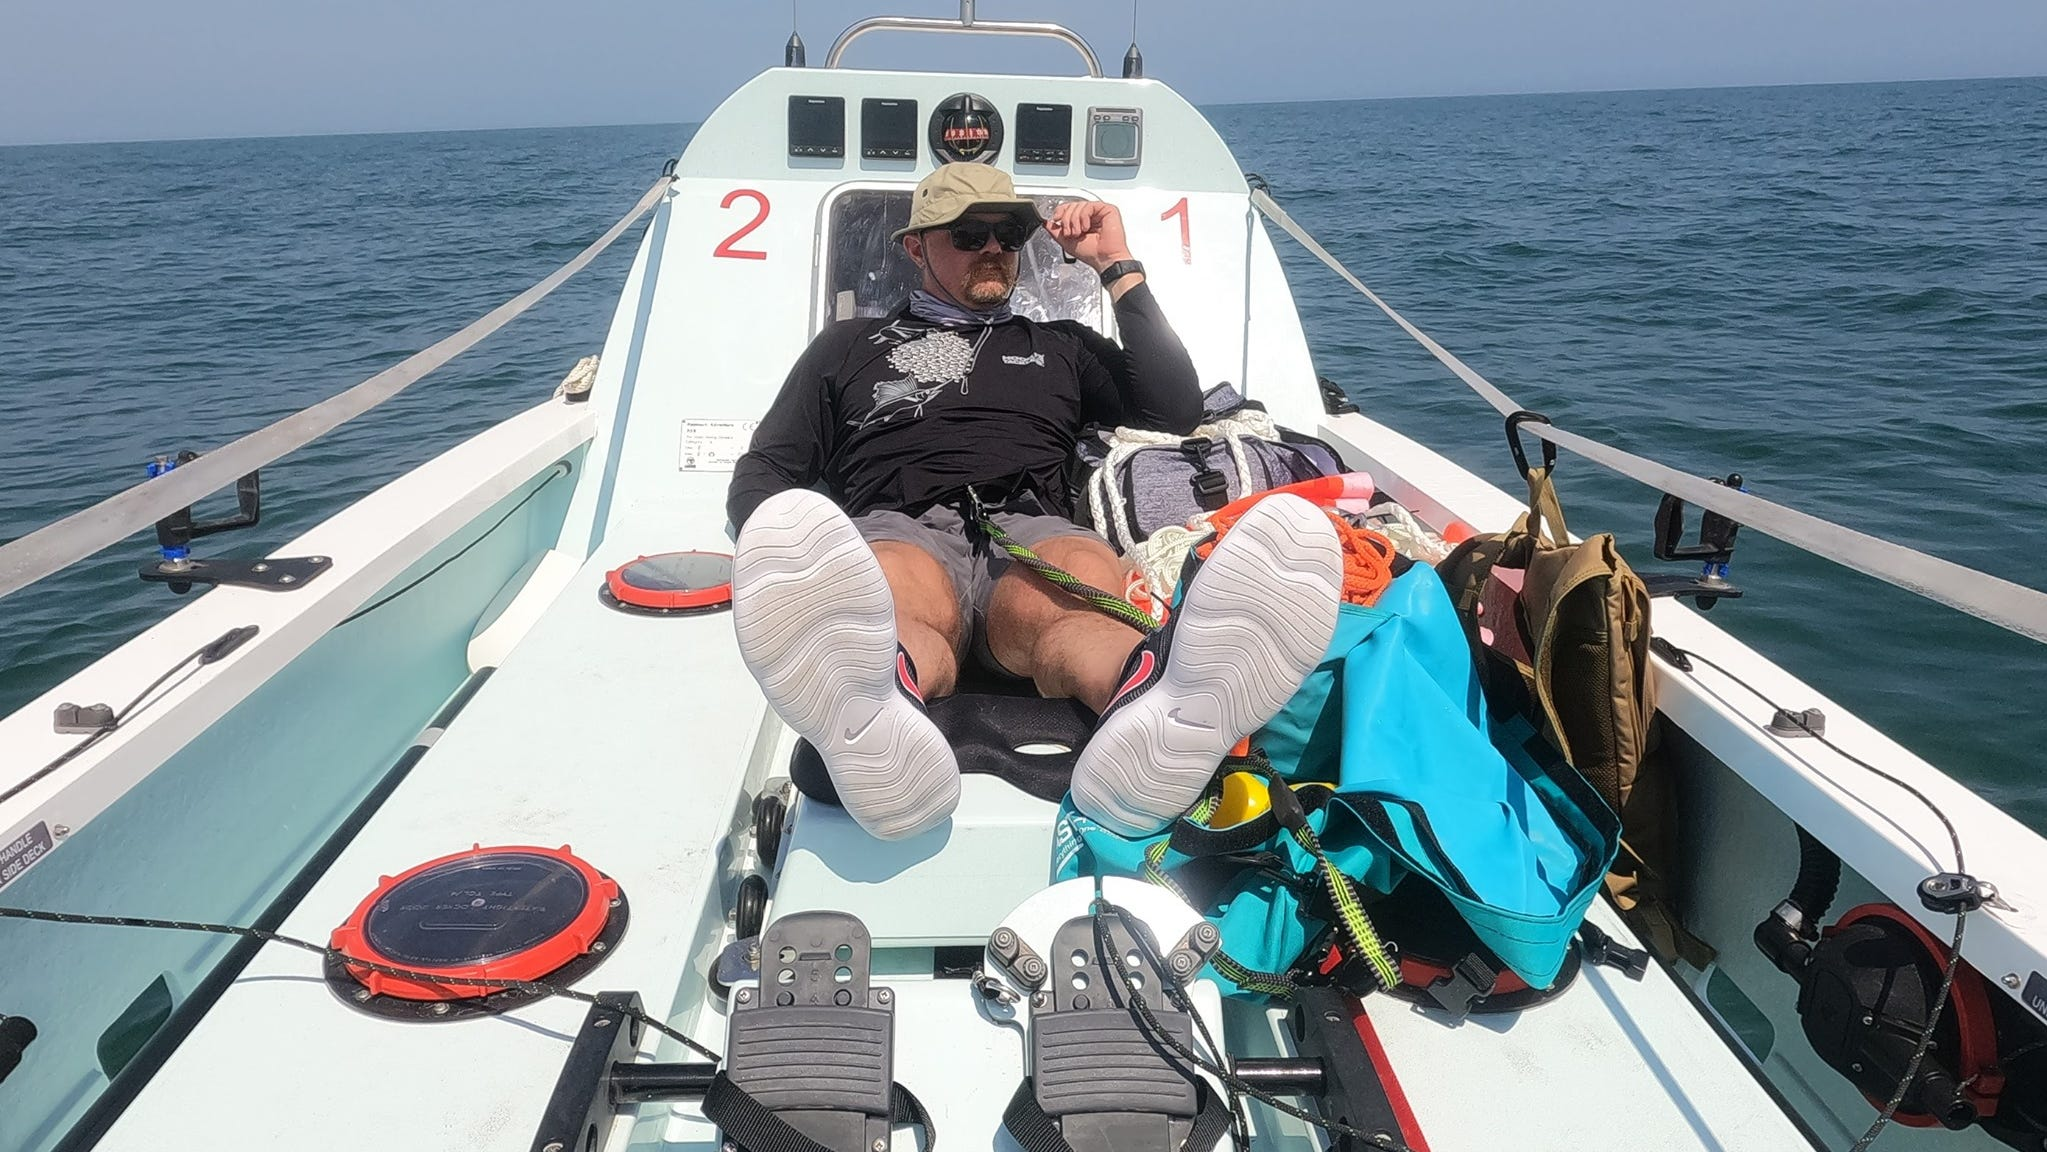 Ben Odom on a Row4Hope ocean-row training expedition with partner Mat Steinlin (not shown).